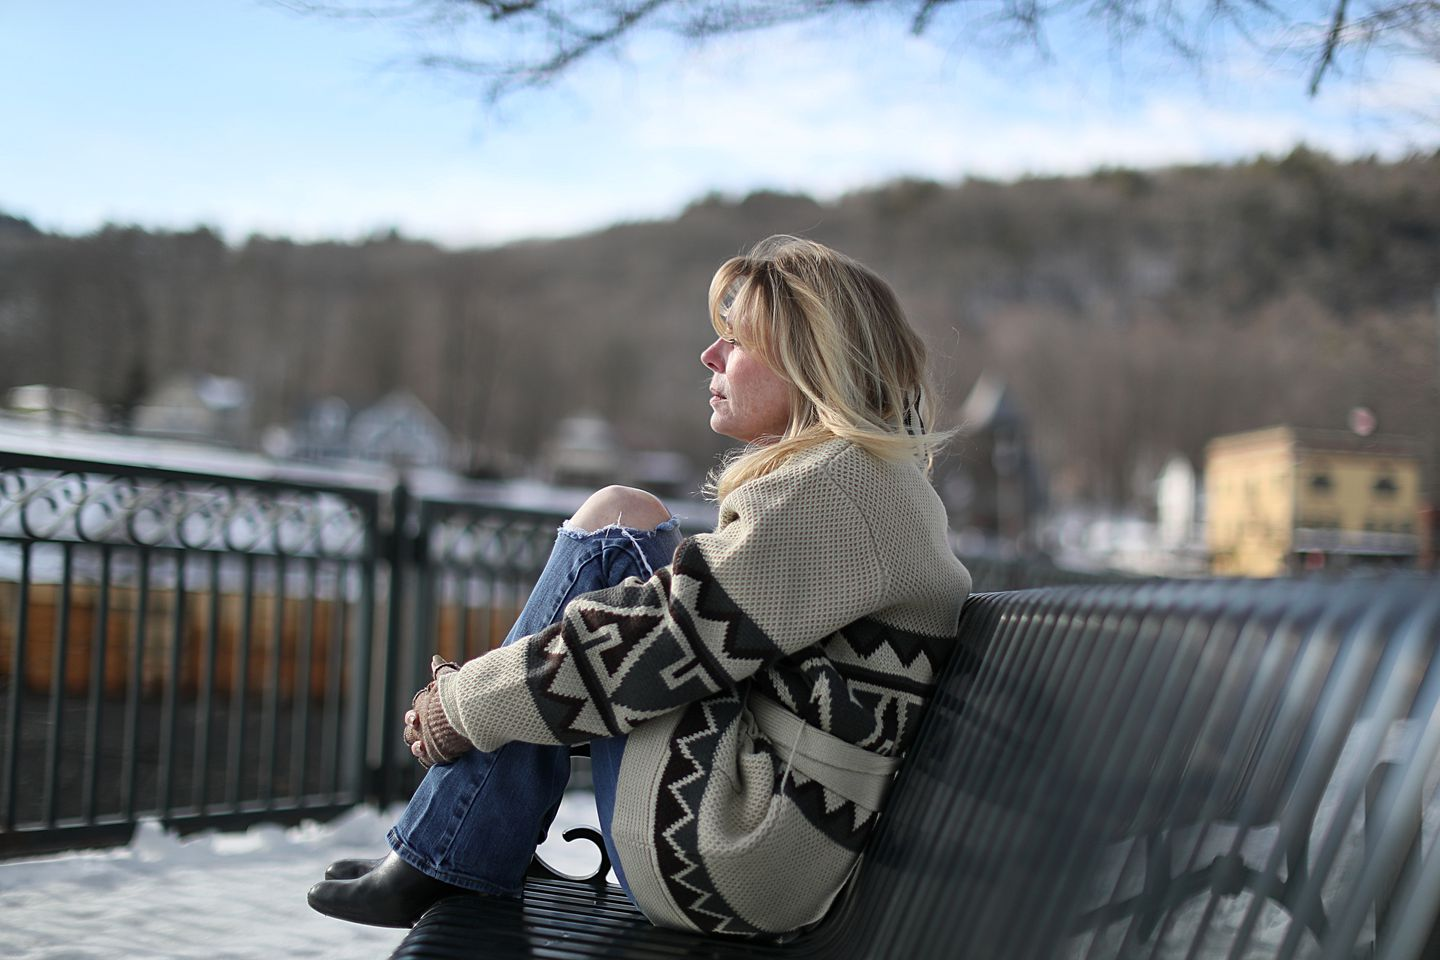 Marycatherin DeFazio takes comfort being close to water. She often sits on the benches at Salmon Falls in Shelburne Falls.